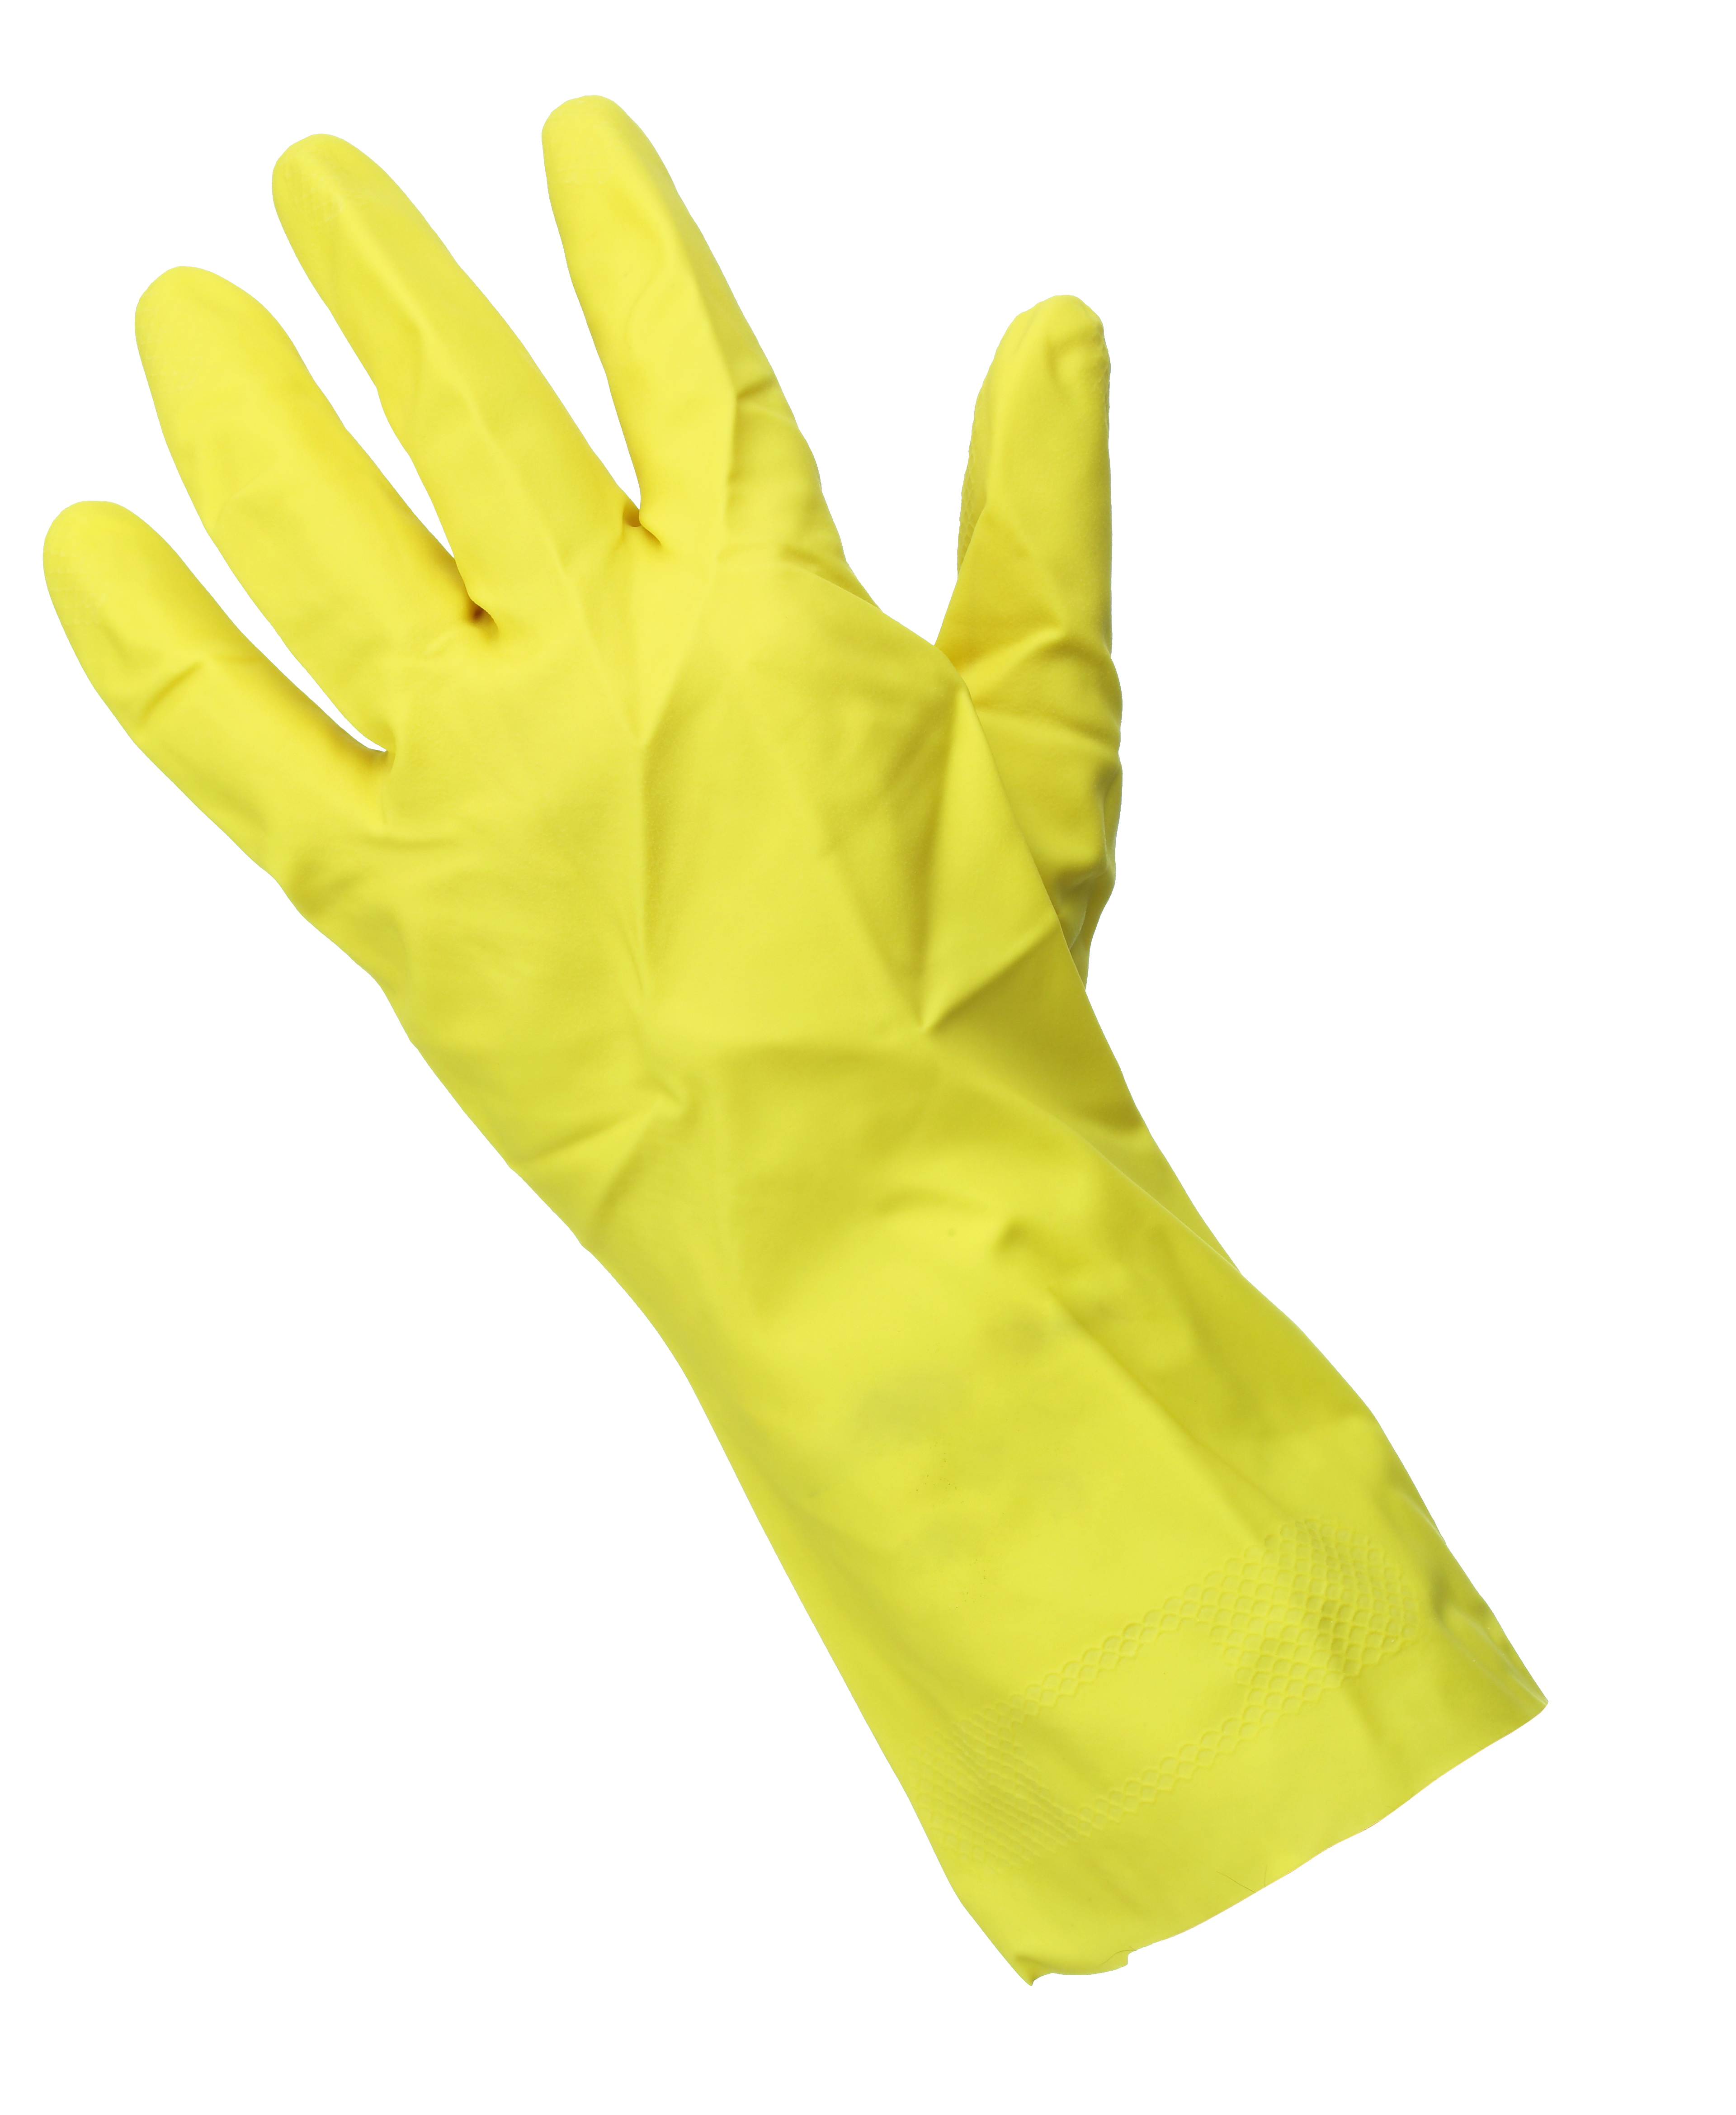 Clean Grip Rubber Household Gloves